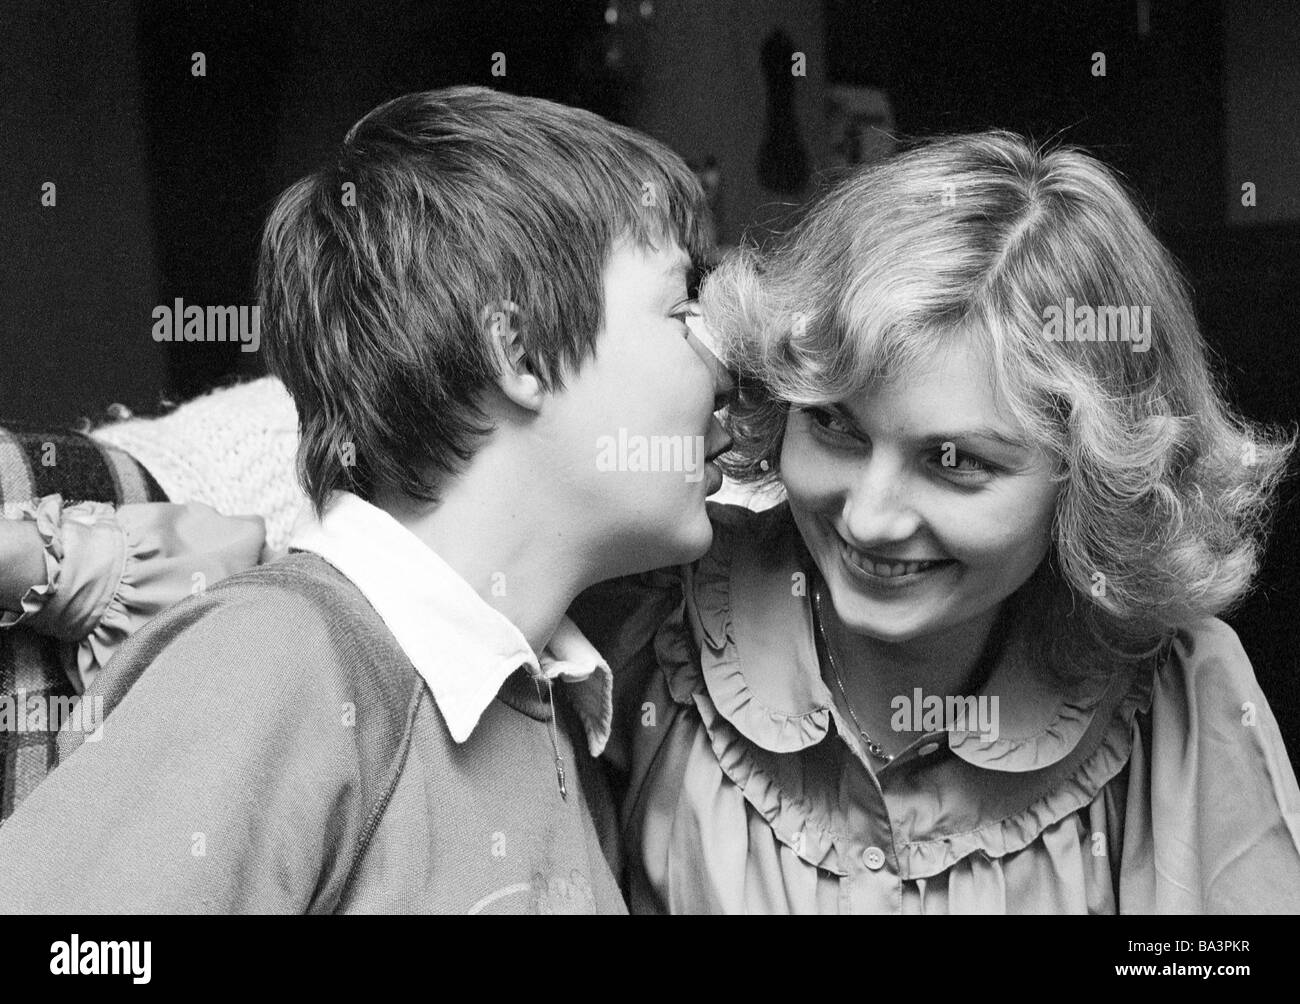 Seventies, black and white photo, people, two young women, whispering, portrait, aged 25 to 30 years, Monika, Jutta - Stock Image